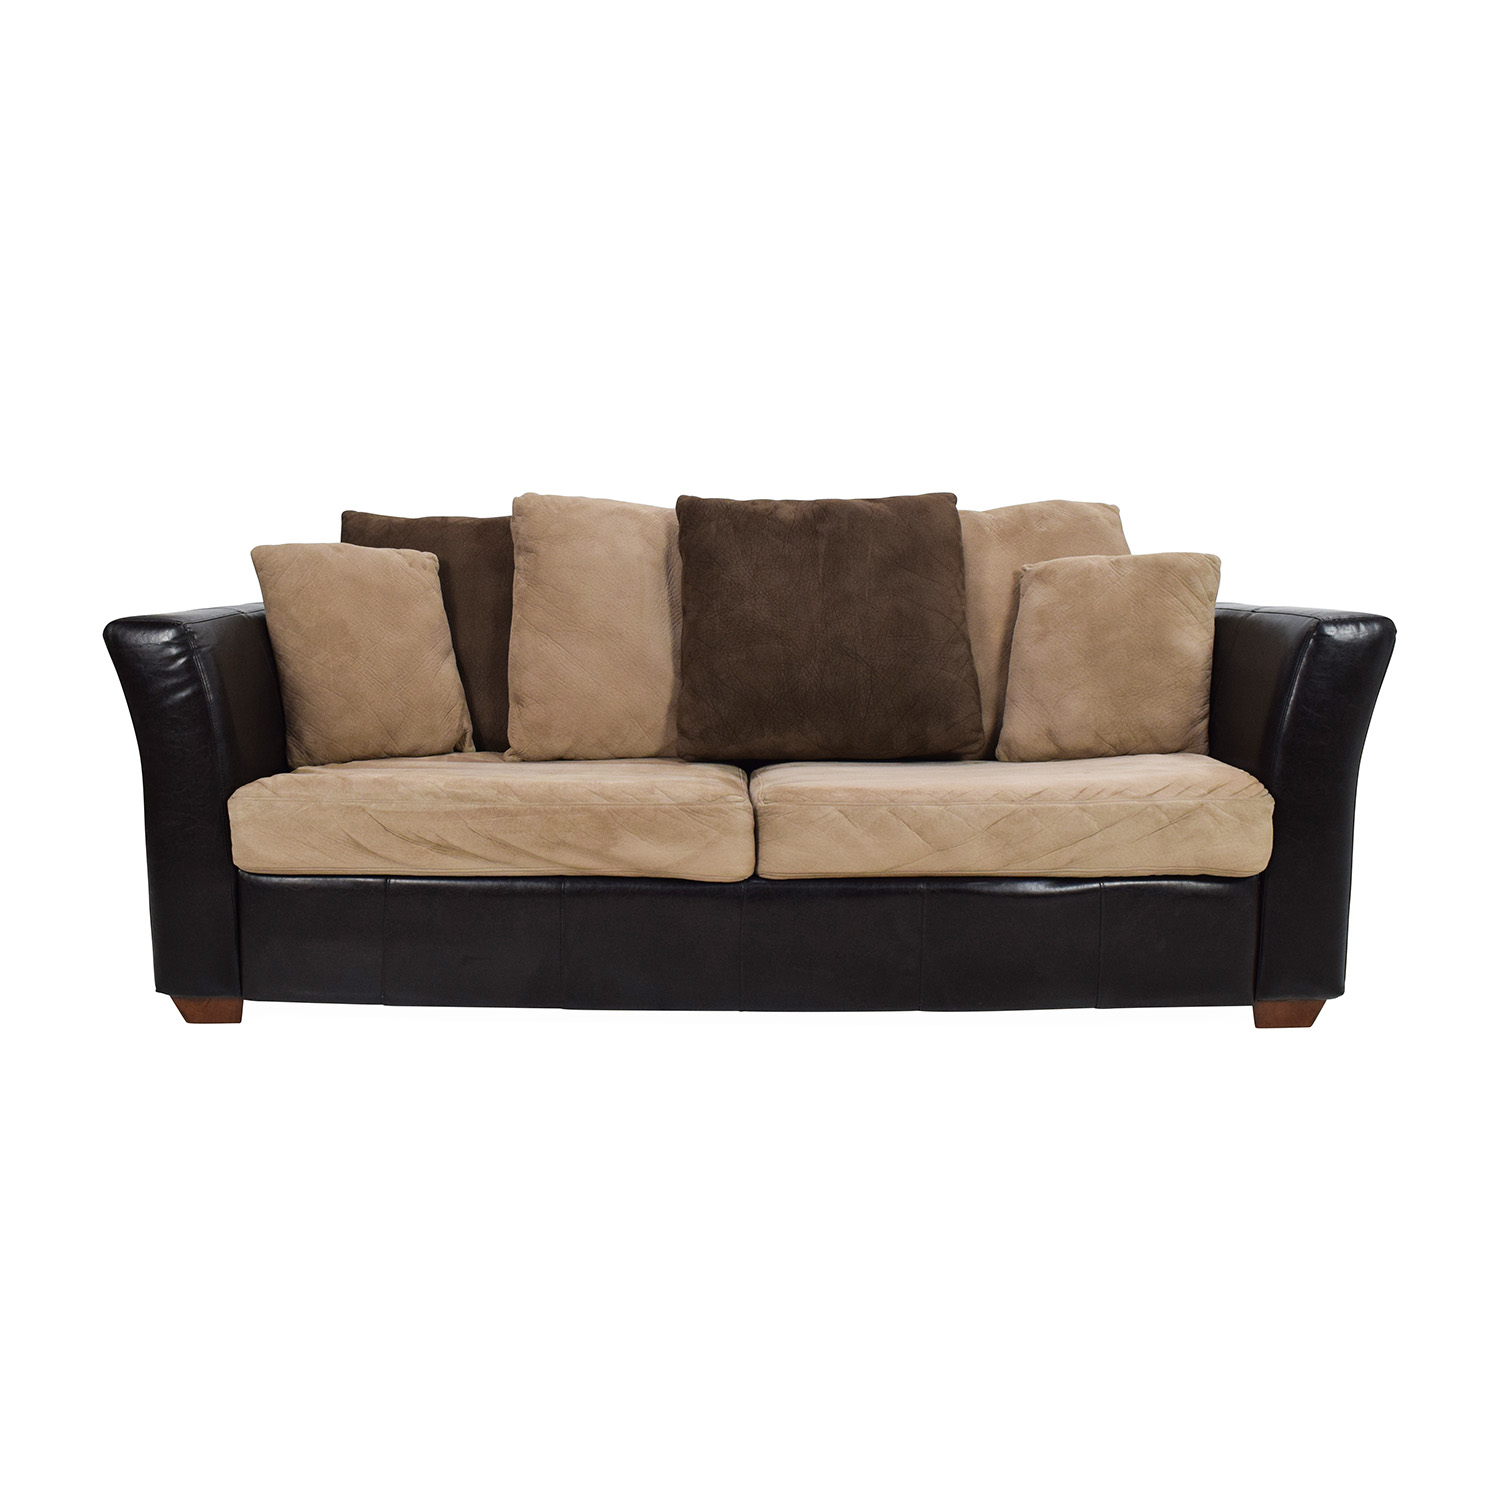 In stock sleeper coupon code Sleeper sofa prices